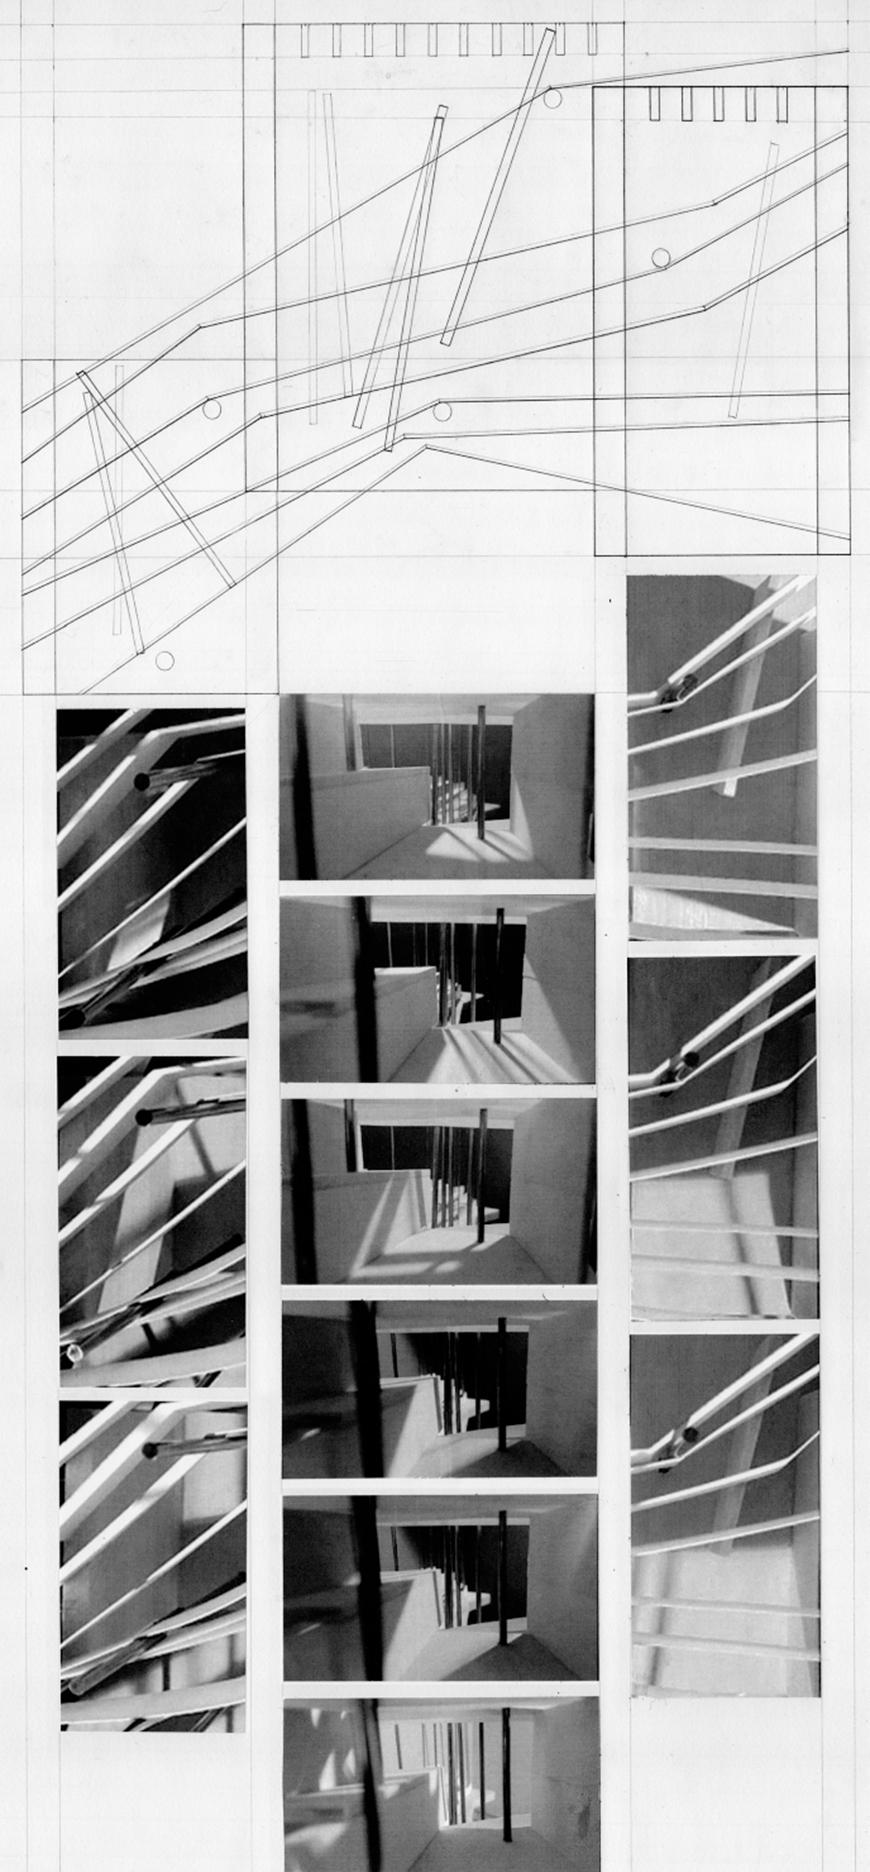 Composite image of working drawing and set of black and white photographs of model details.